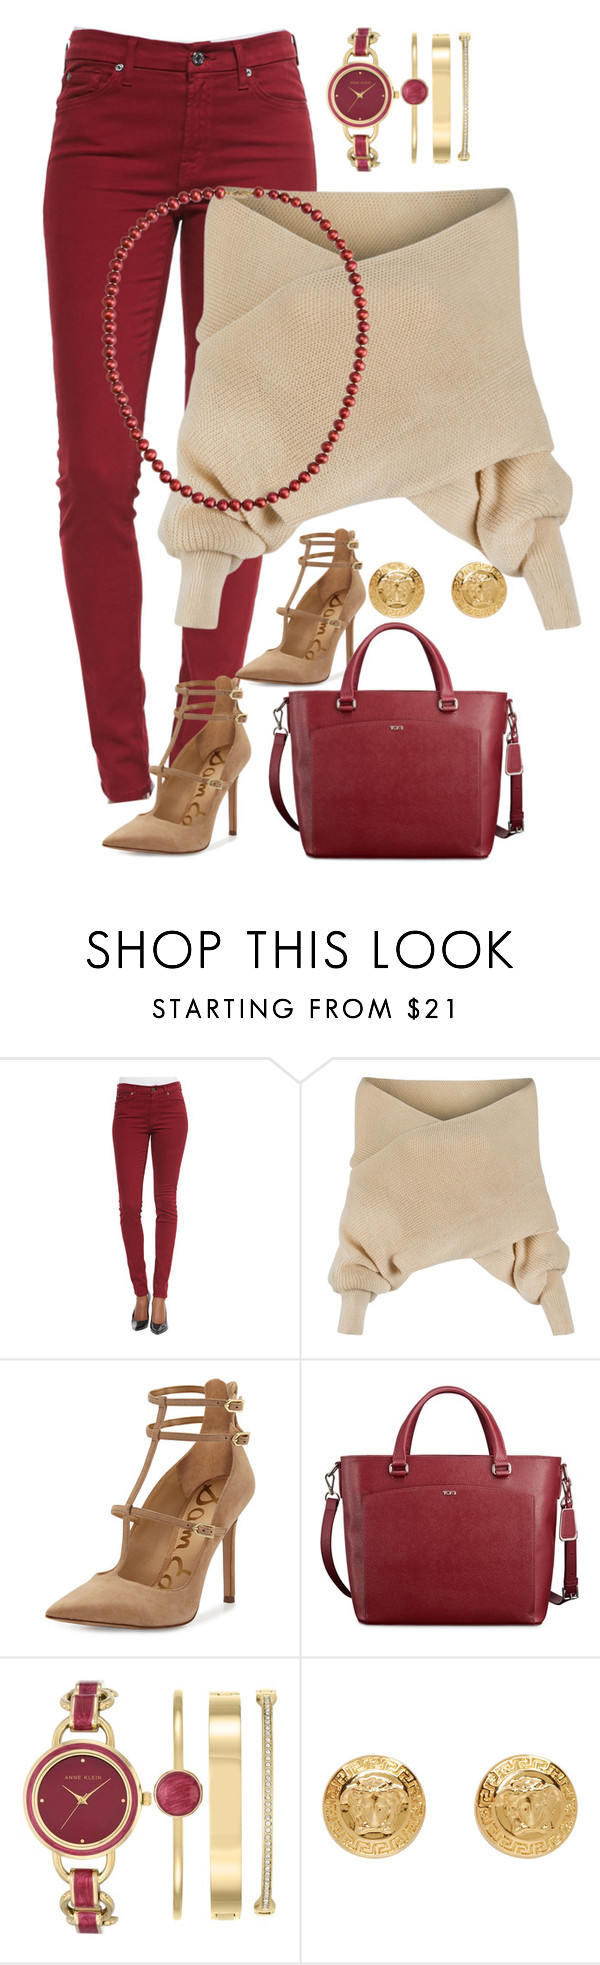 """""""Warm"""" by ahapplet ❤ liked on Polyvore featuring 7 For All Mankind, WithChic, Sam Edelman, Tumi, Anne Klein, Versace, A B Davis, caramel, cranberry and ahapplet"""